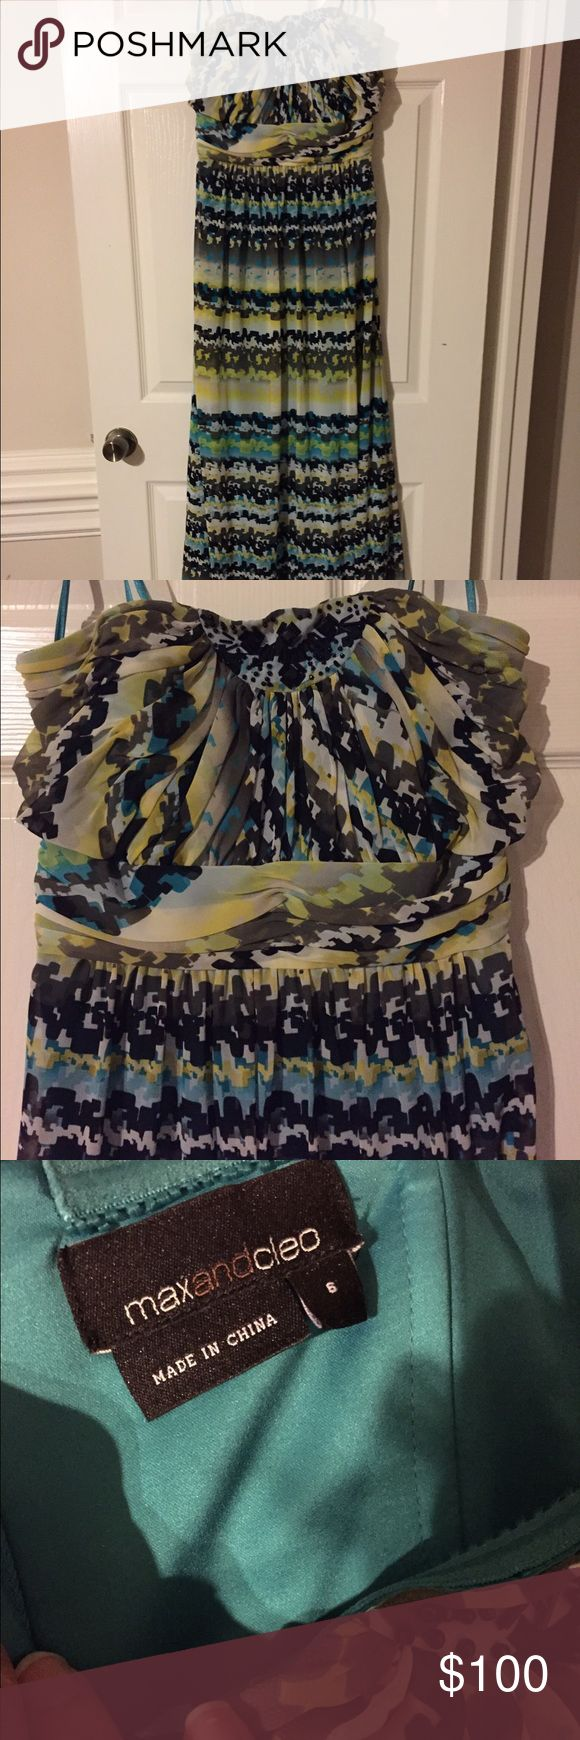 Multi-Colored Formal Dress, Size 6 Turquoise, light green, black and white multi-colored formal dress. Full length. Max and Cleo. Size 6, but runs a bit small. Worn once to a sorority formal. Max & Cleo Dresses Strapless